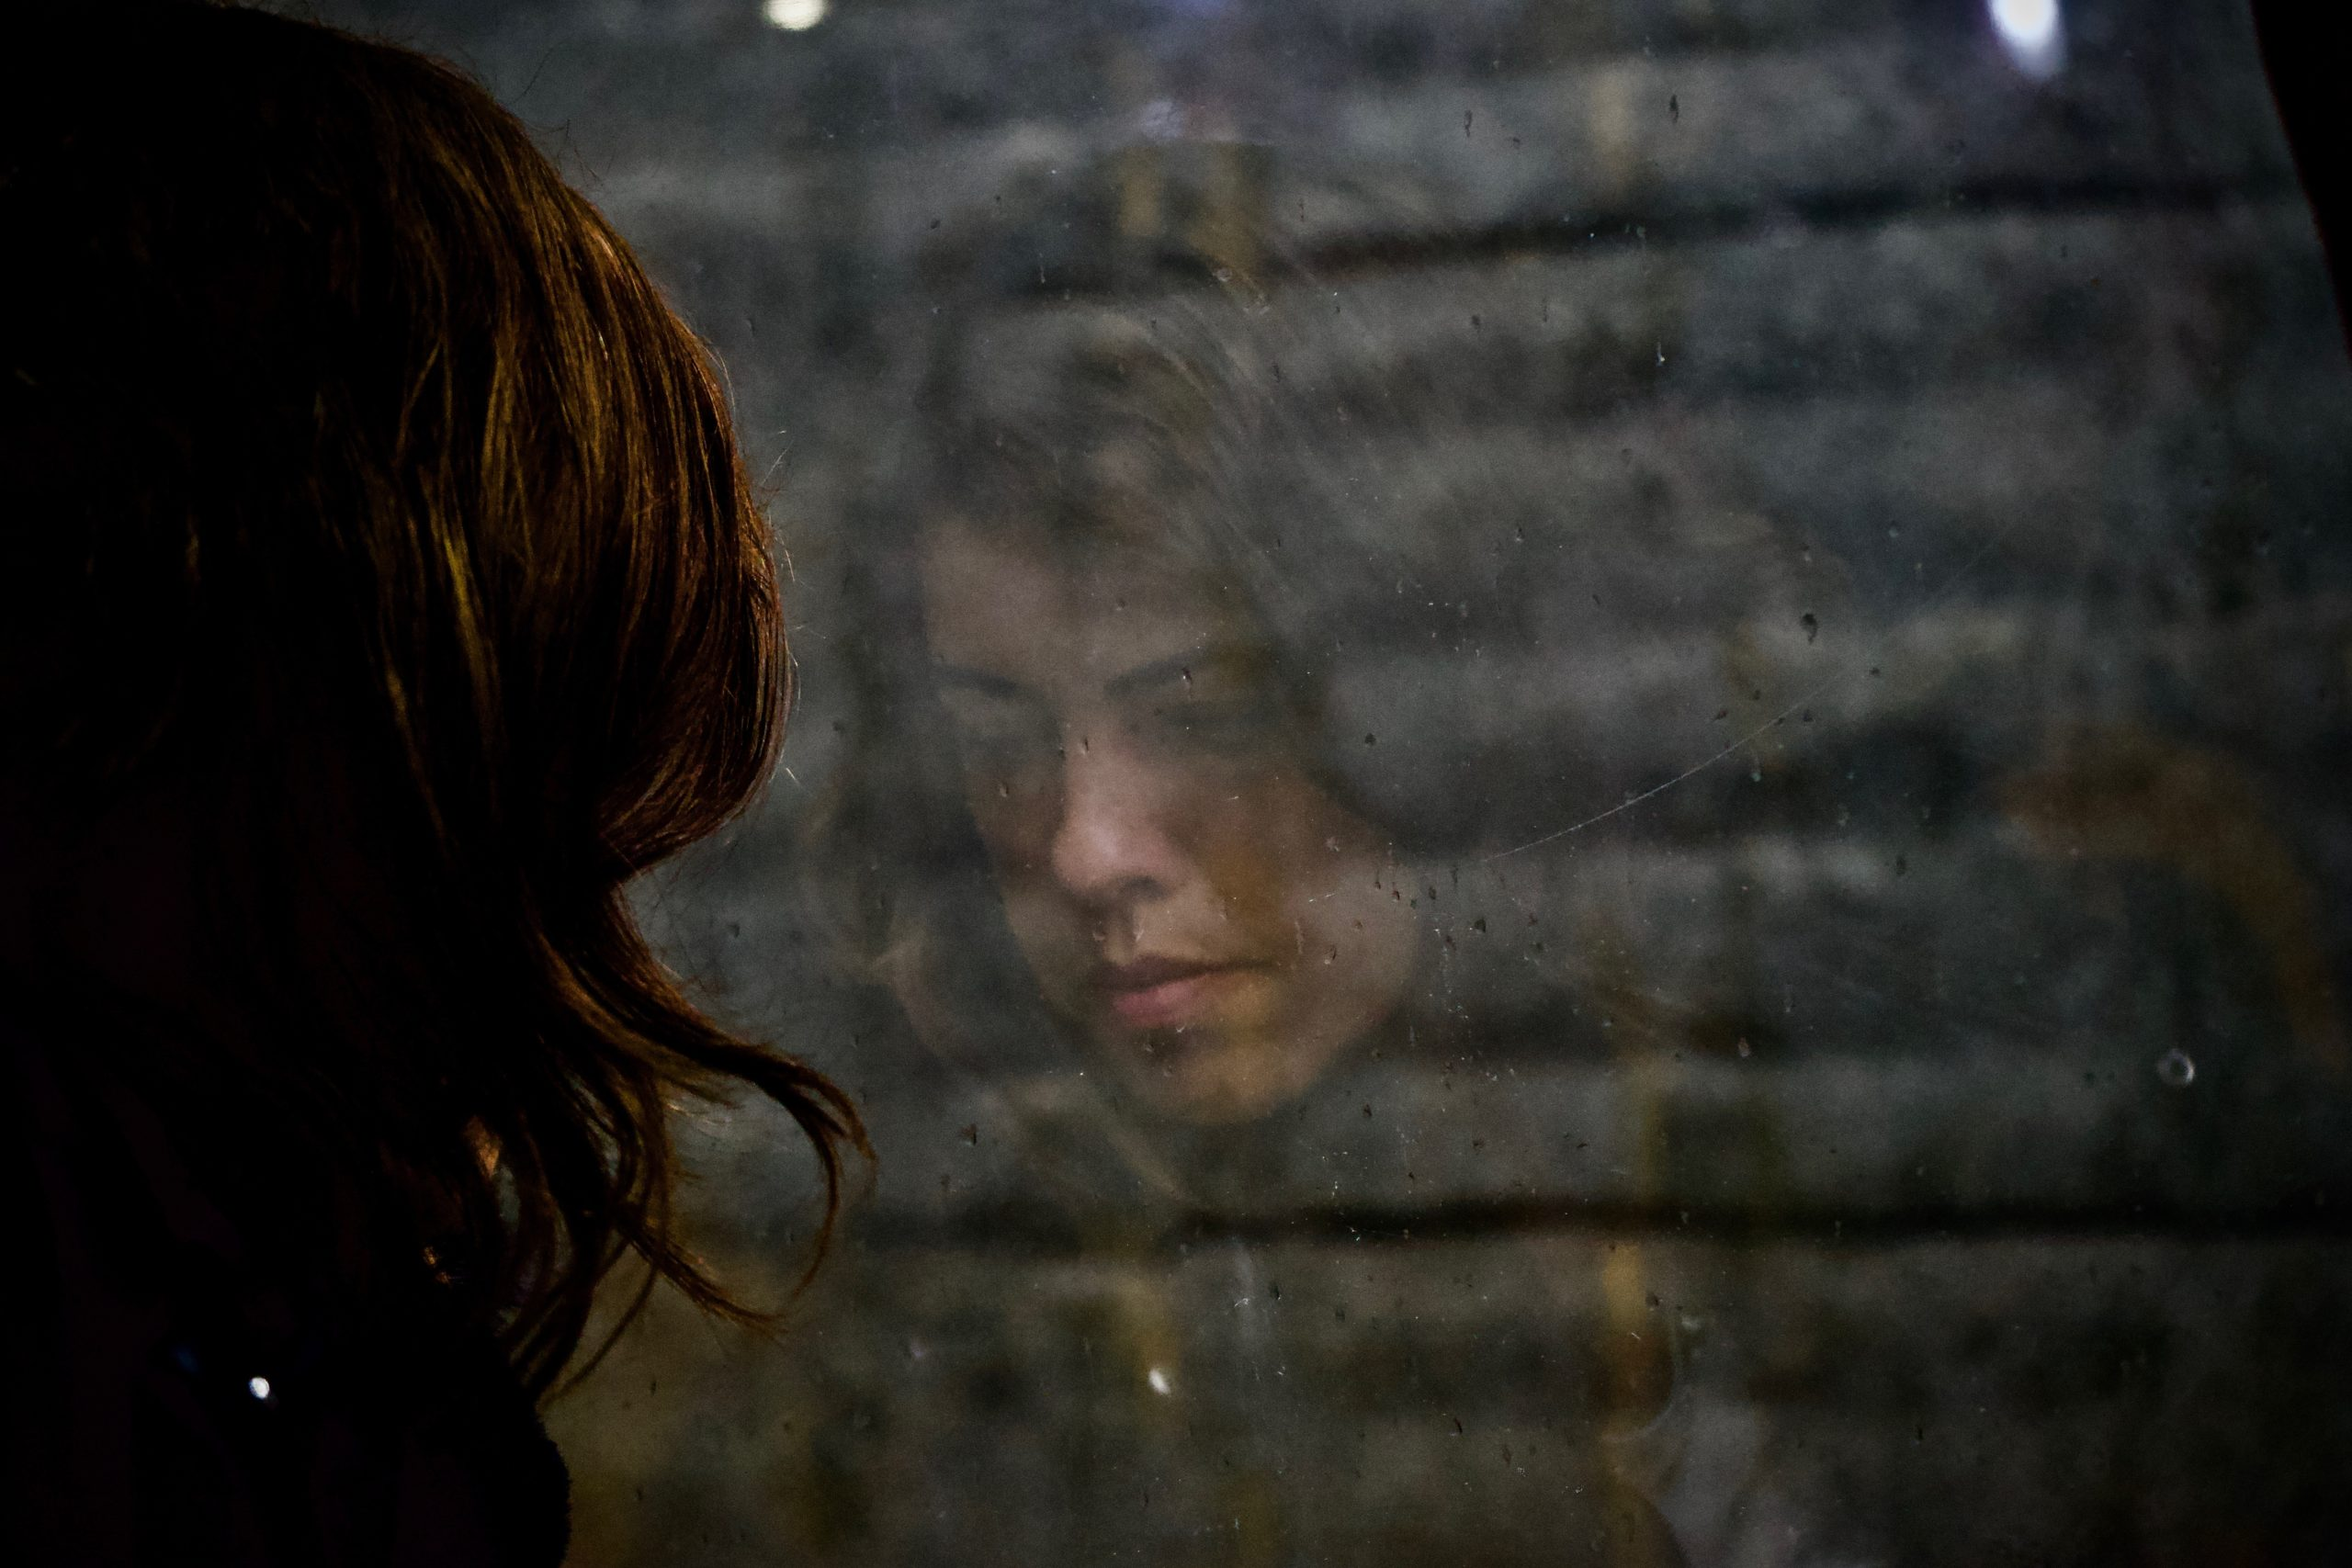 A light skinned woman with dark brown hair is pictured from the back. We can only see her face faintly in the reflection of the window in front of her.